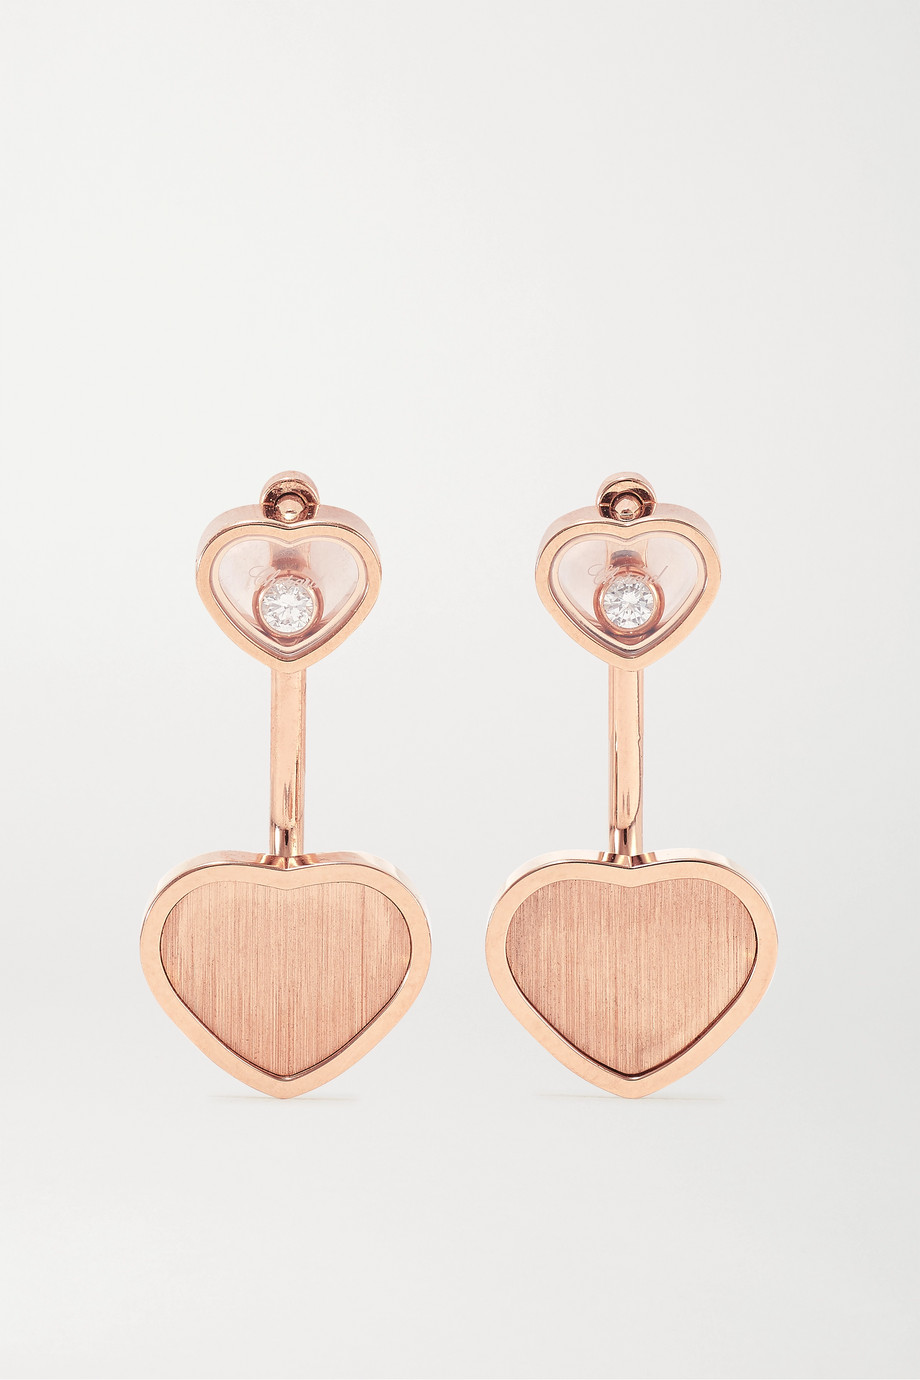 Chopard + 007 Happy Hearts Golden Hearts 18-karat rose gold diamond earrings